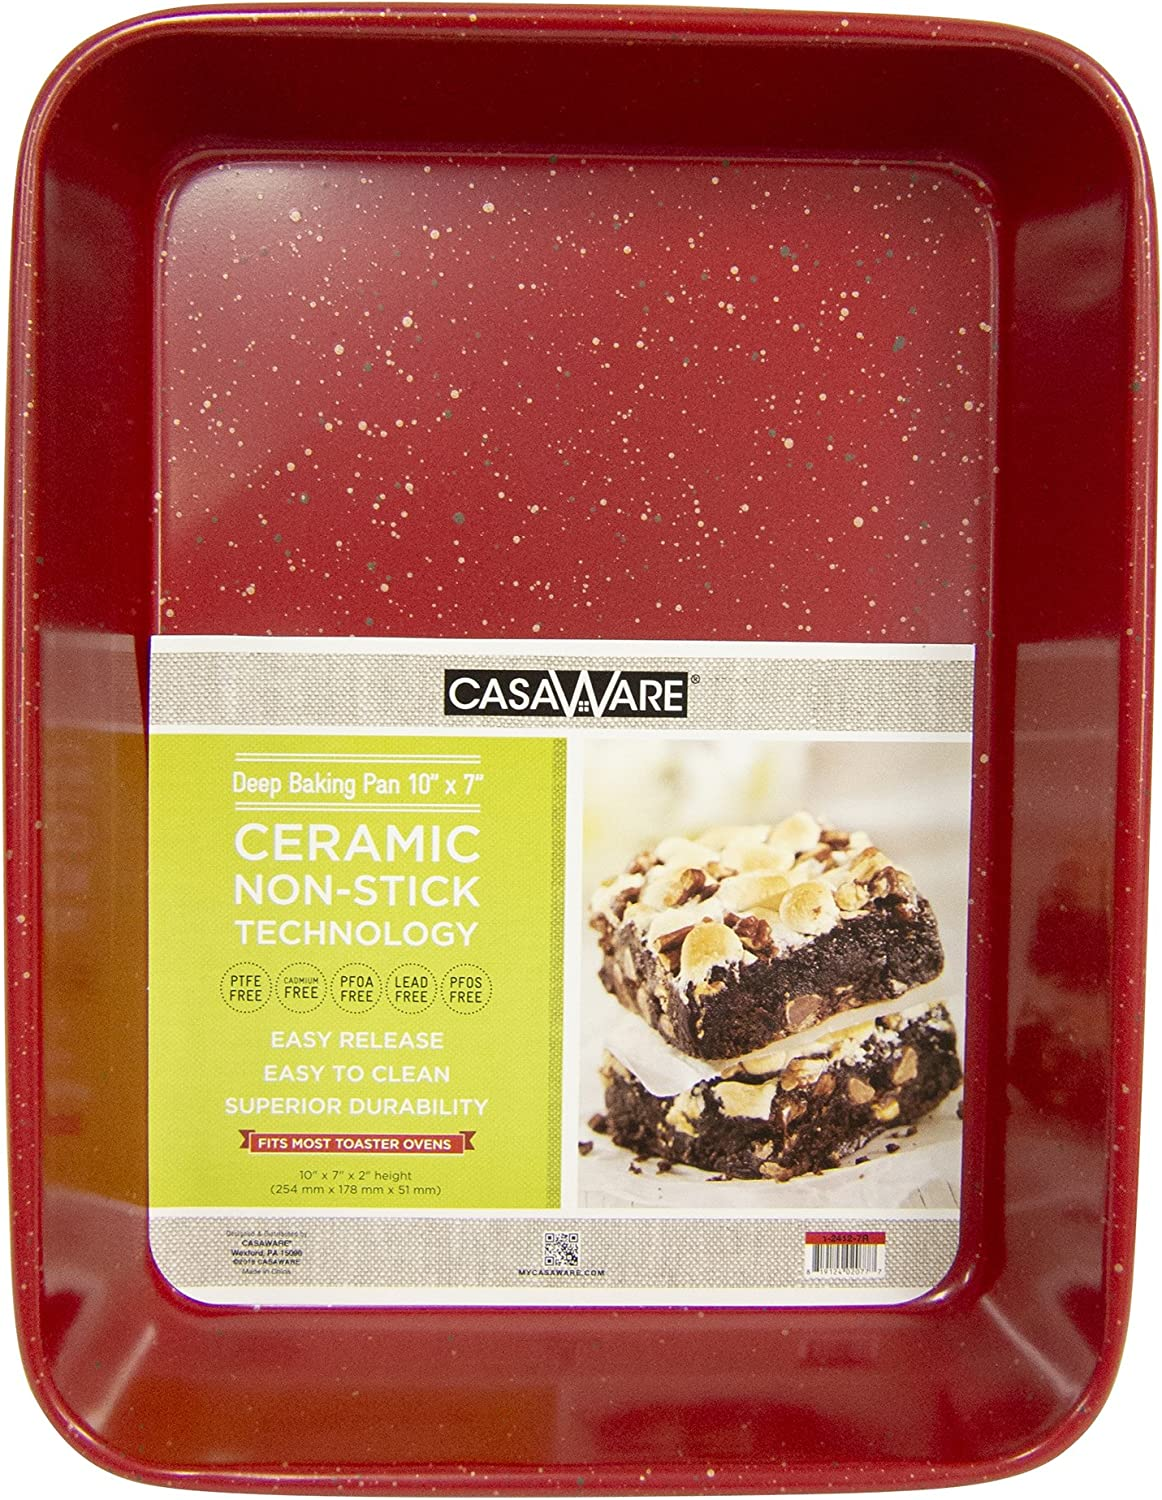 casaWare Toaster Oven Deep Baking Pan 10 x 7 x 2-inch Ceramic Coated Non-Stick (Red Granite)